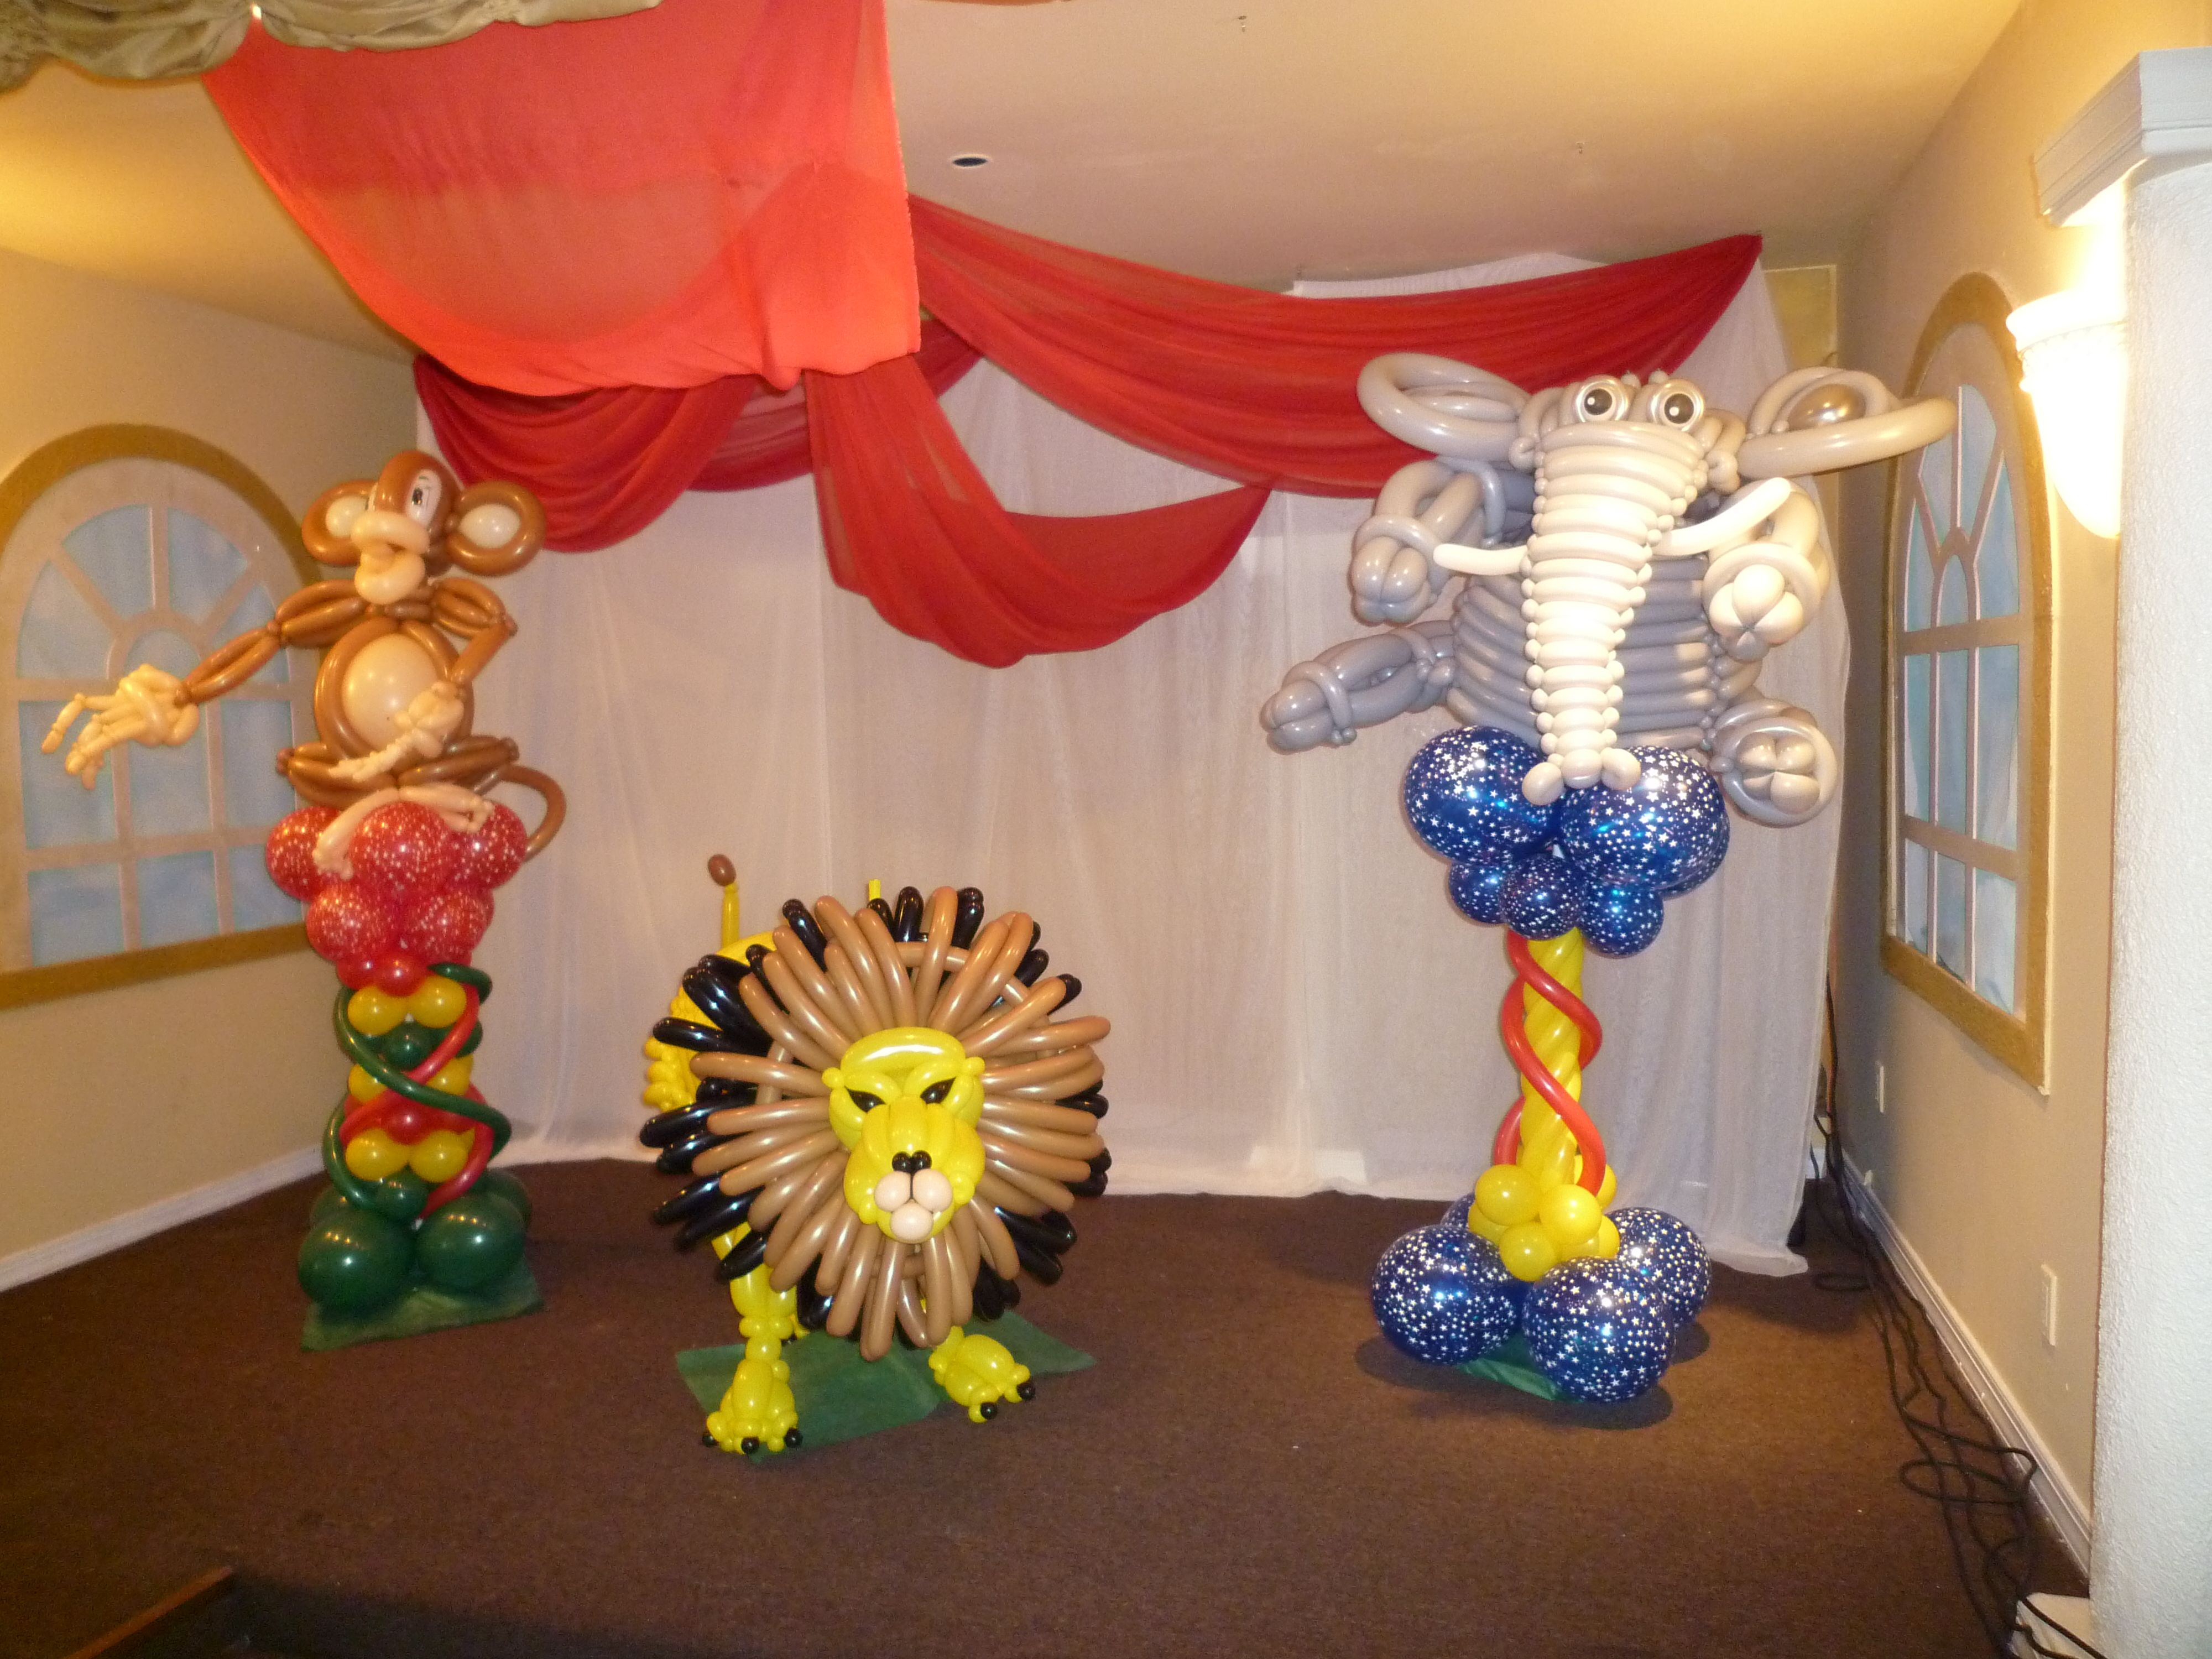 Pin By Mr Balloon Man On Decoration Kids Party Decorations Balloons Balloon Decorations